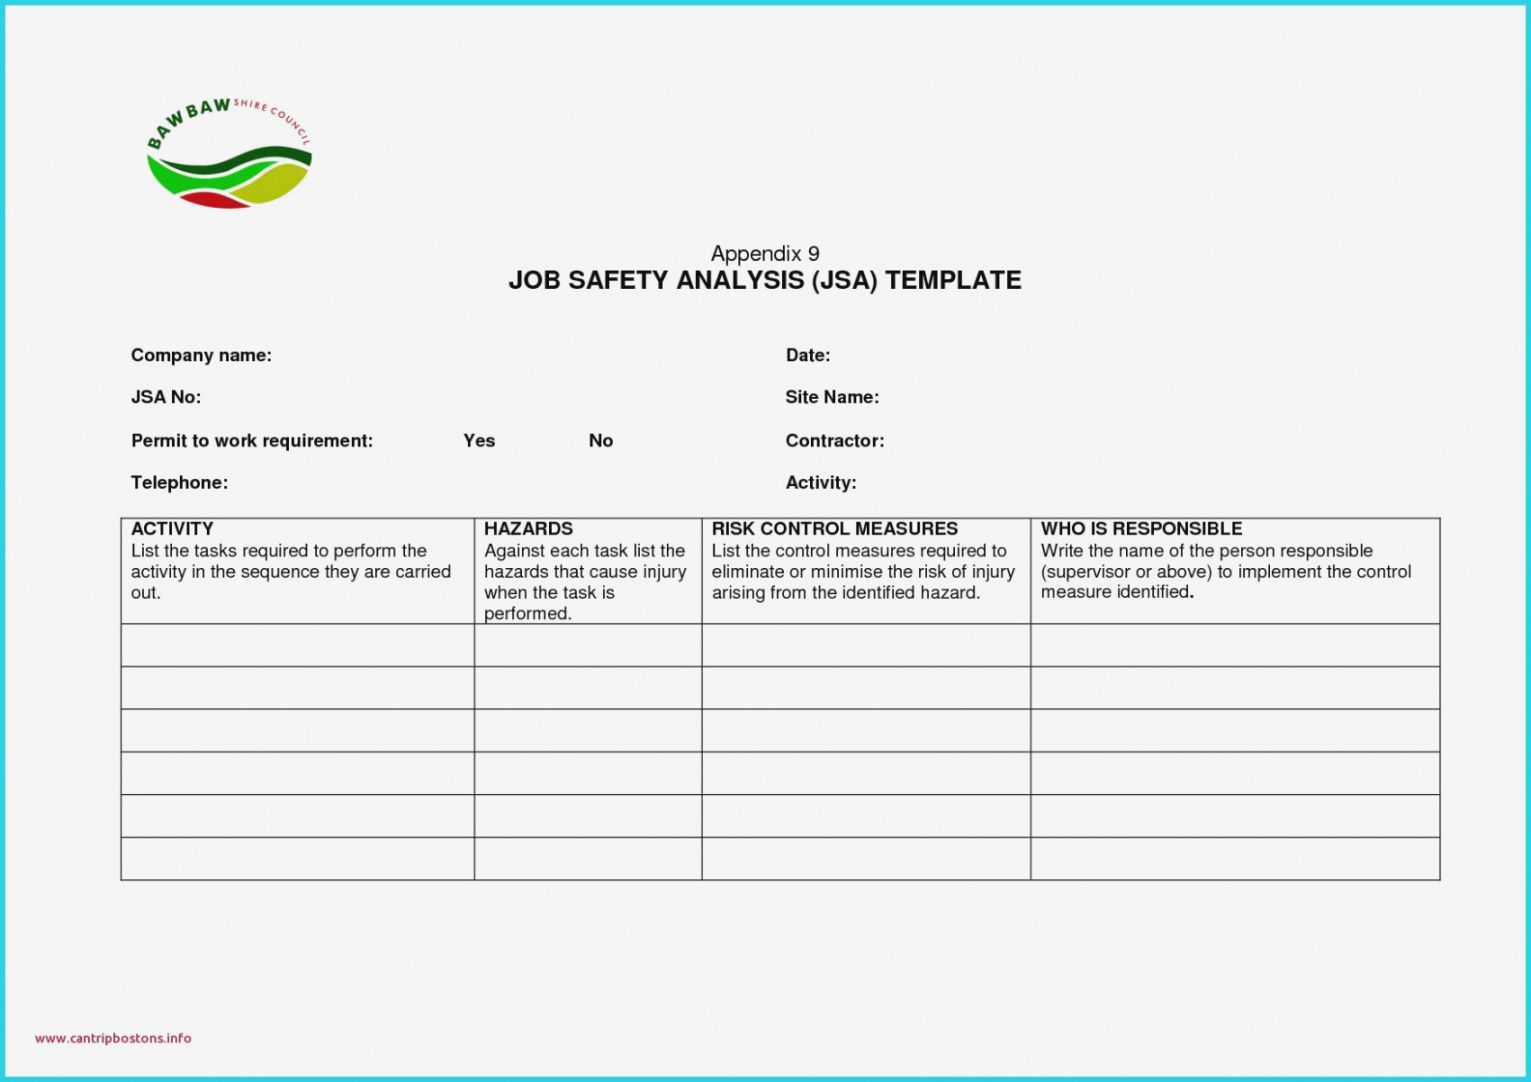 Job Hazard Analysis Form New Safety Analysis Report Template Image Safety Analysis Report Template Excel Book Report Templates Report Template Templates